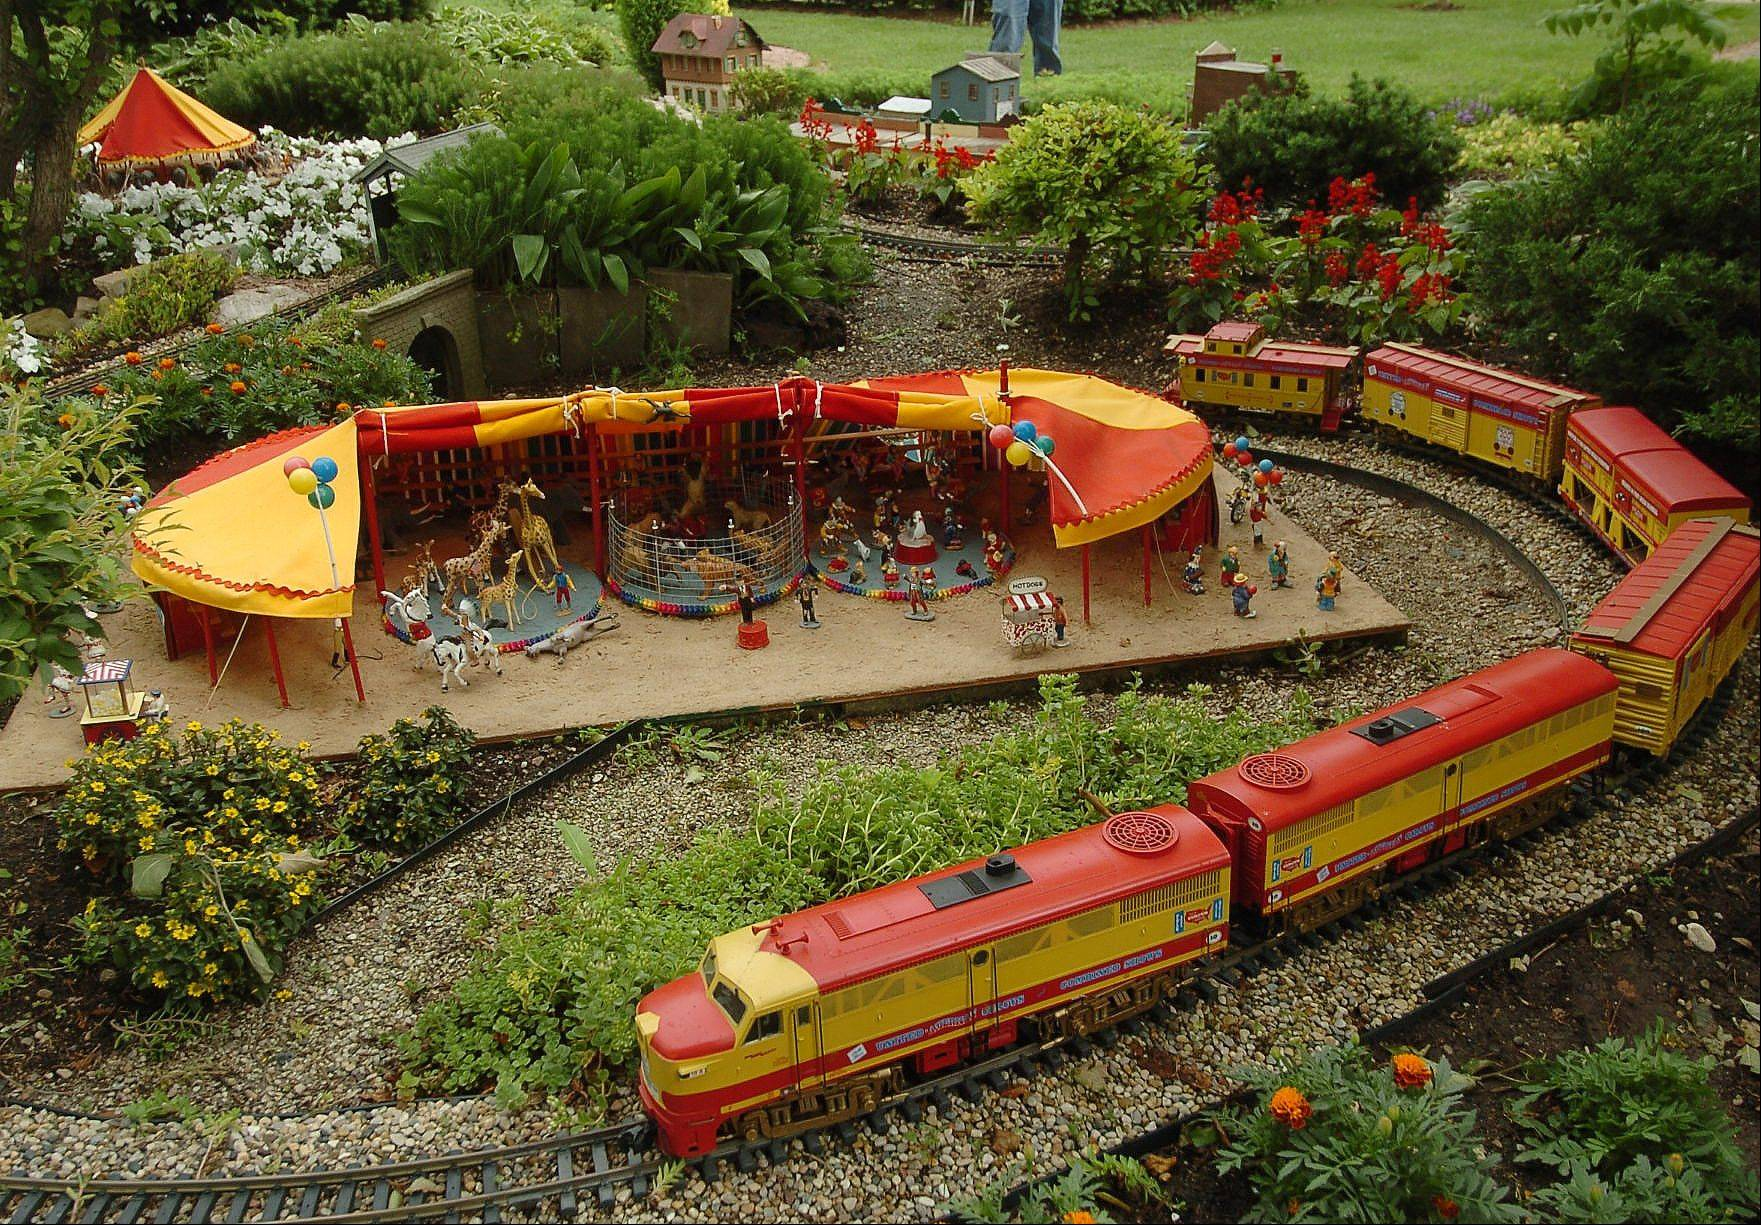 Circus train on Elaine Silets' garden railroad.